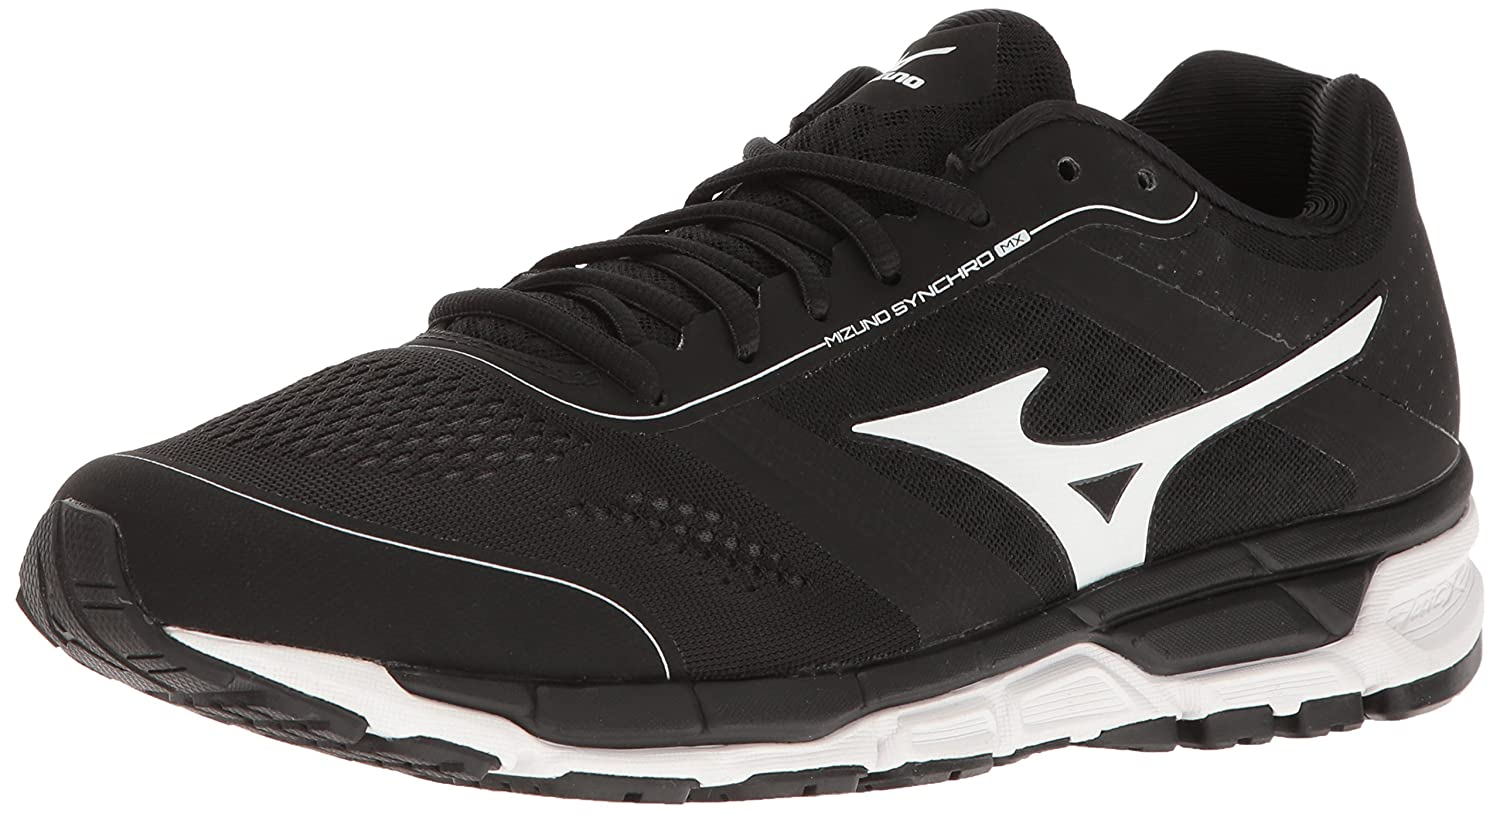 Mizuno Men's Synchro Mx Baseball Shoe B01JPIE486 9.5 D(M) US|Black/White